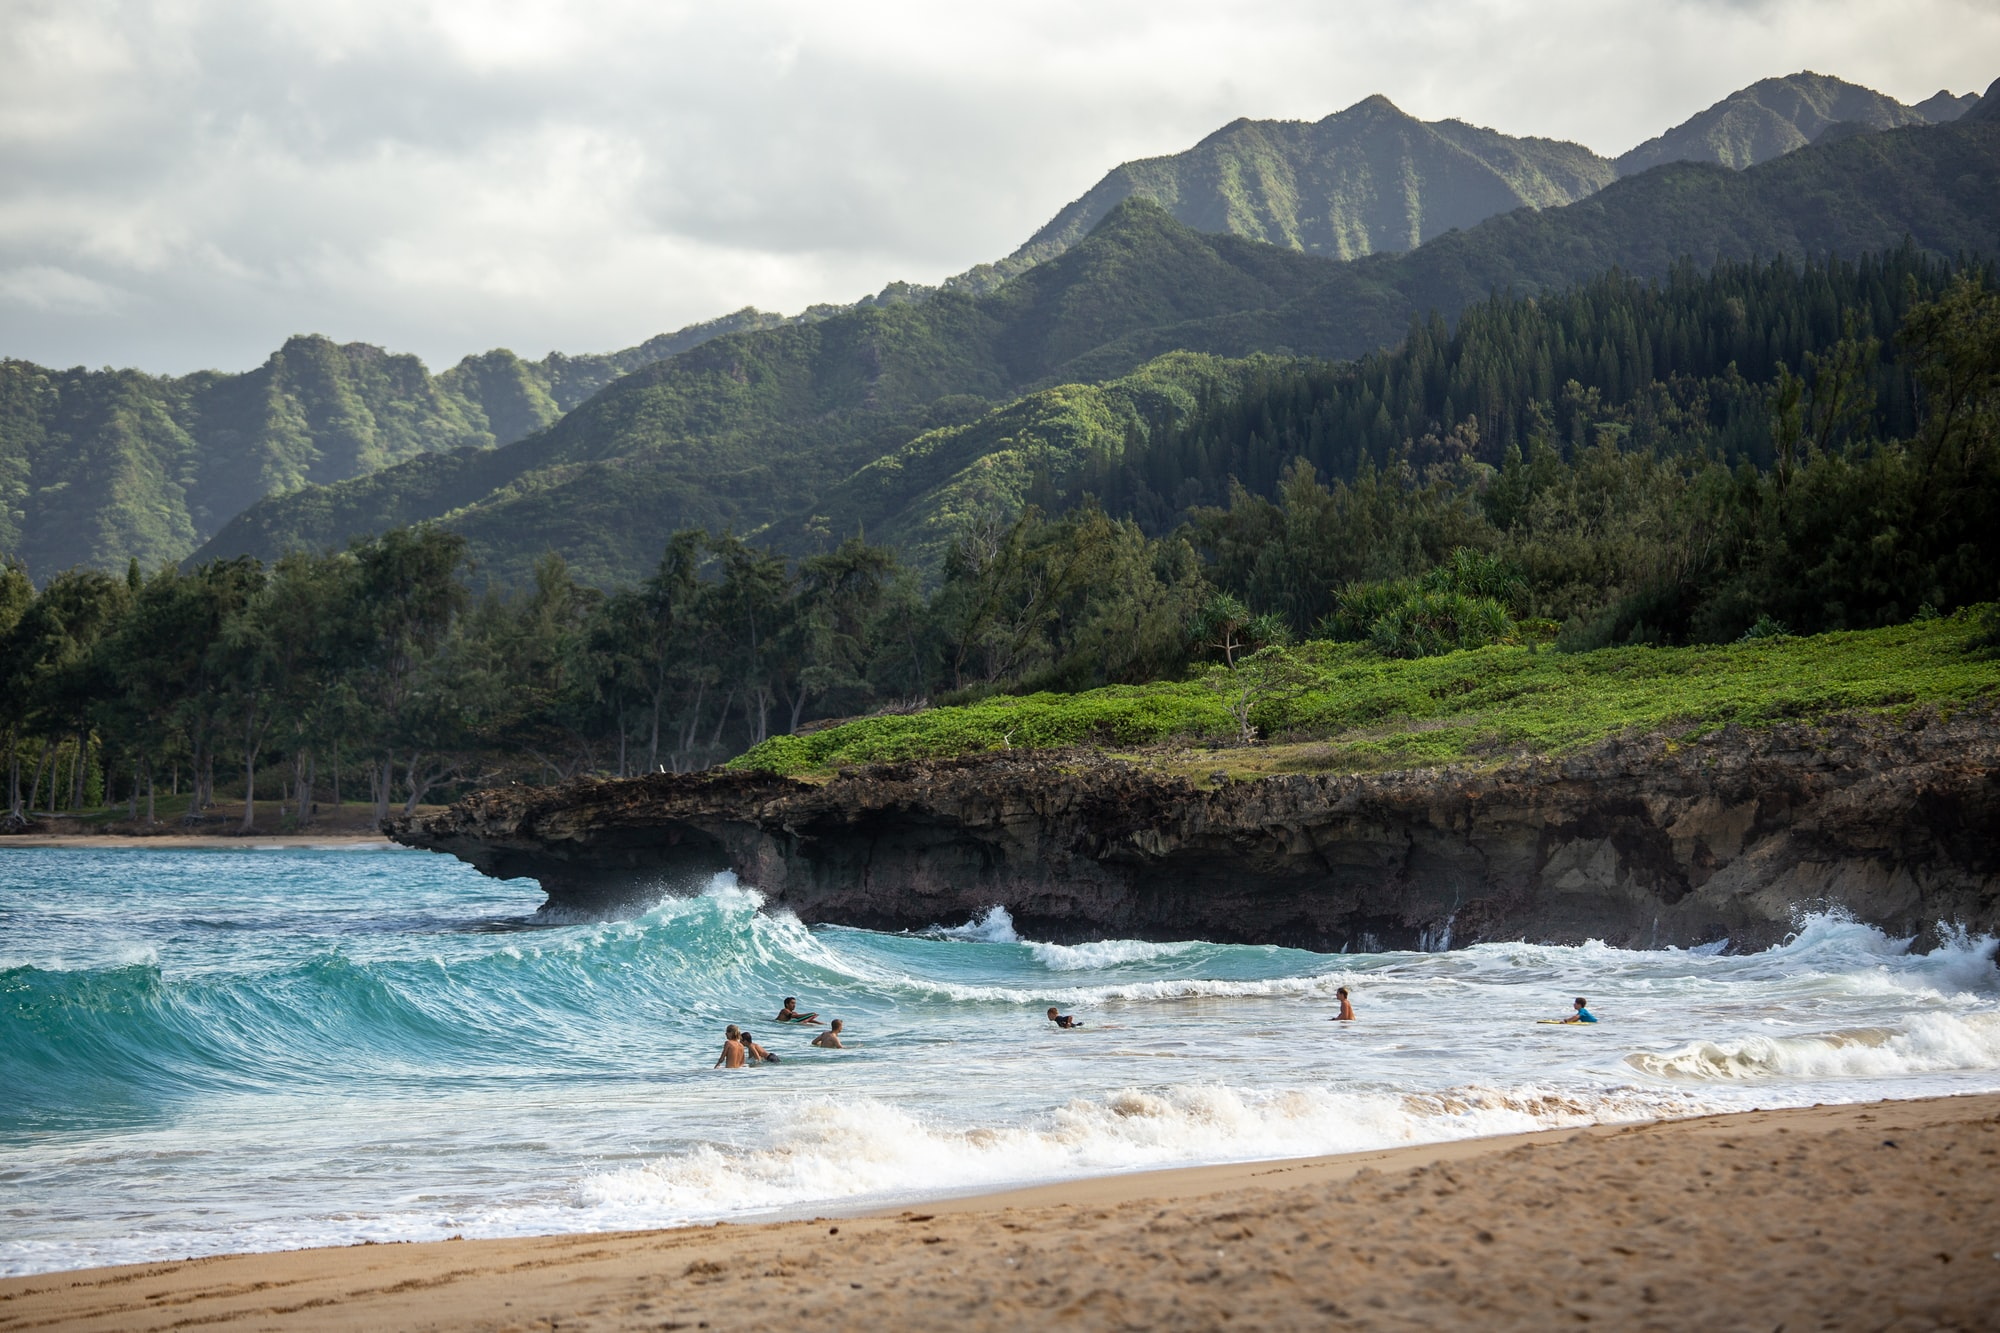 Road tripping around Oahu, the smaller northern beaches are great to catch some sun and watch local surfers